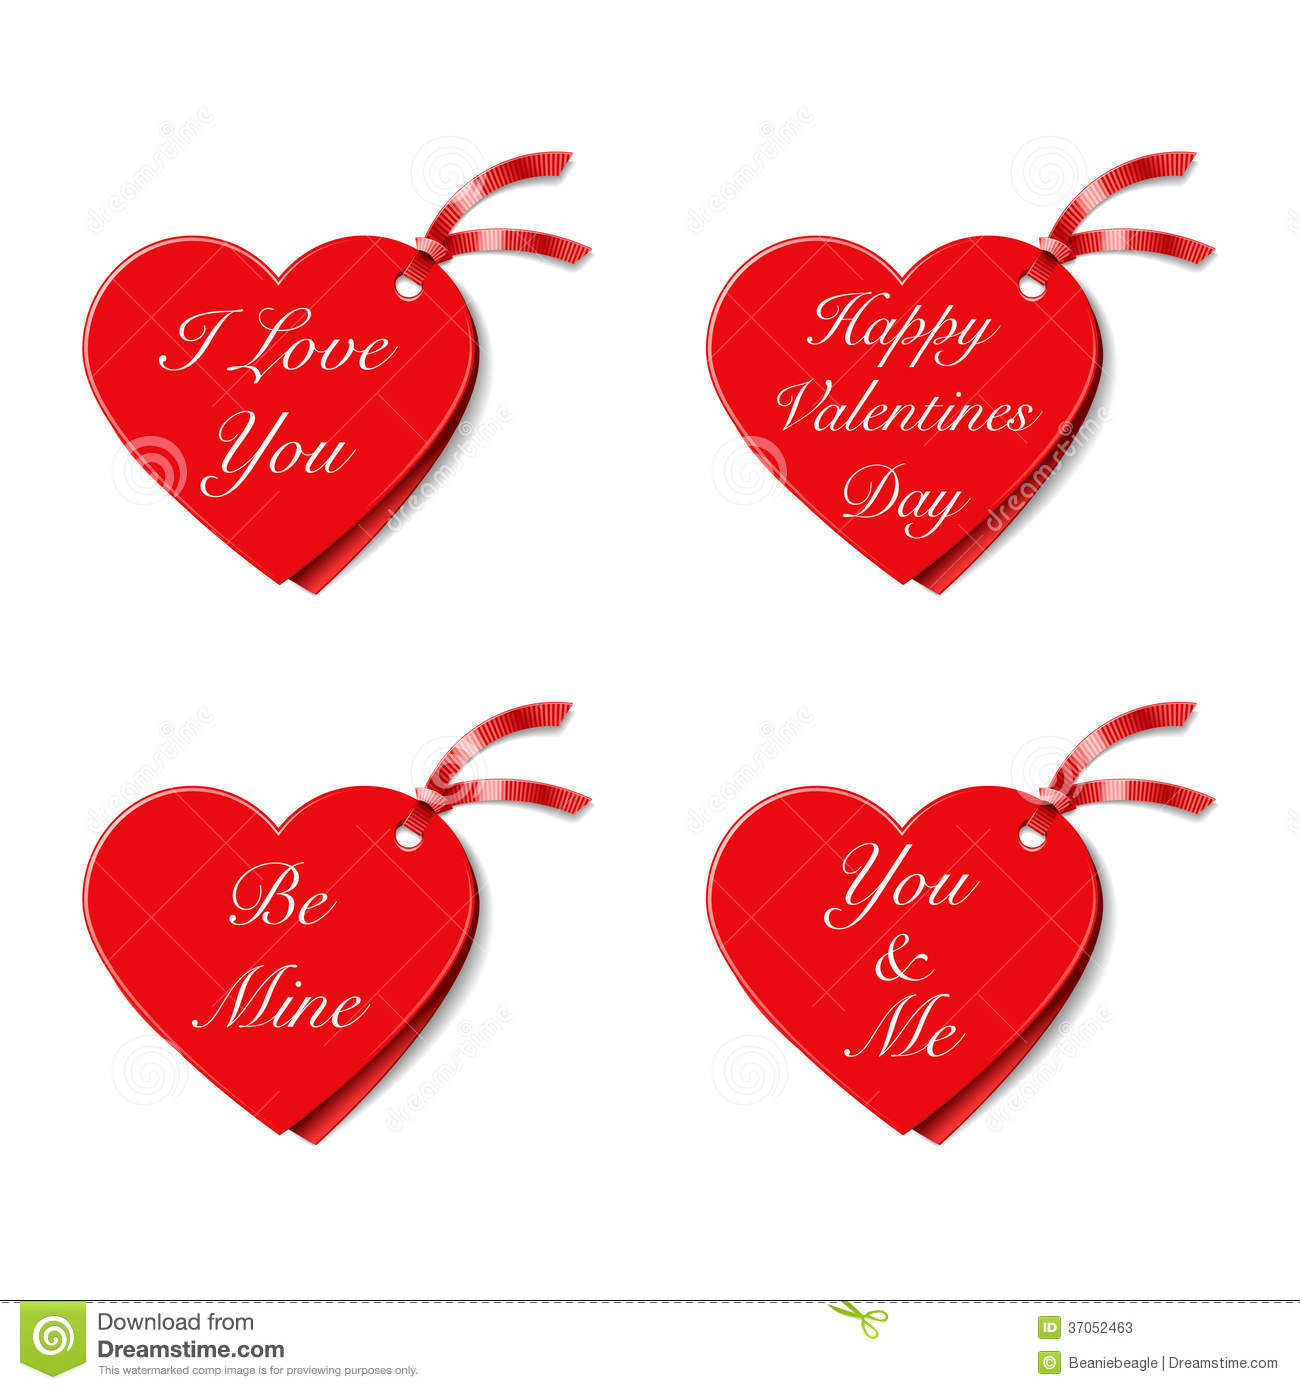 Valentines Gift Tags Stock Photos - Image: 37052463